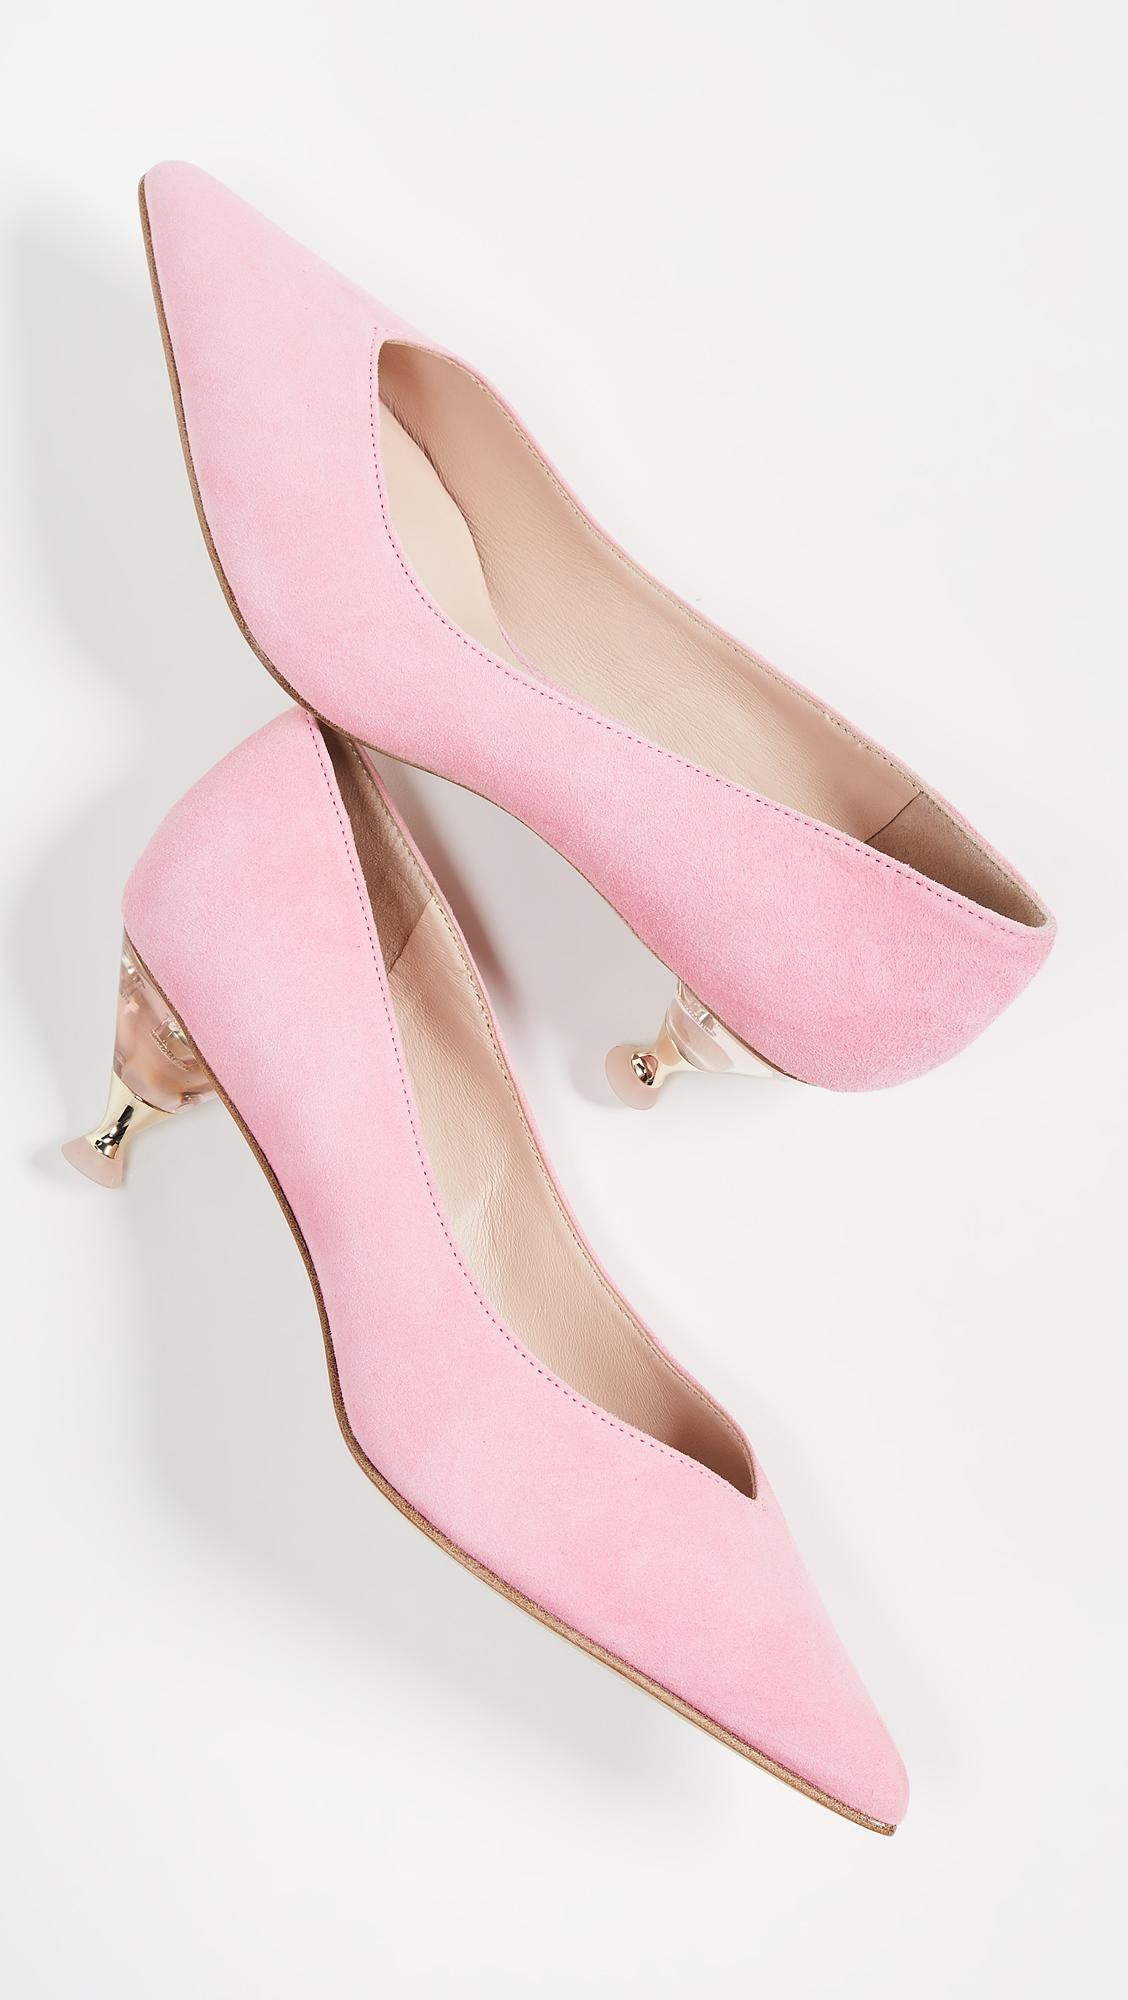 8d1bfc854 Kate Spade Coco Point Toe Pumps in Pink - Lyst